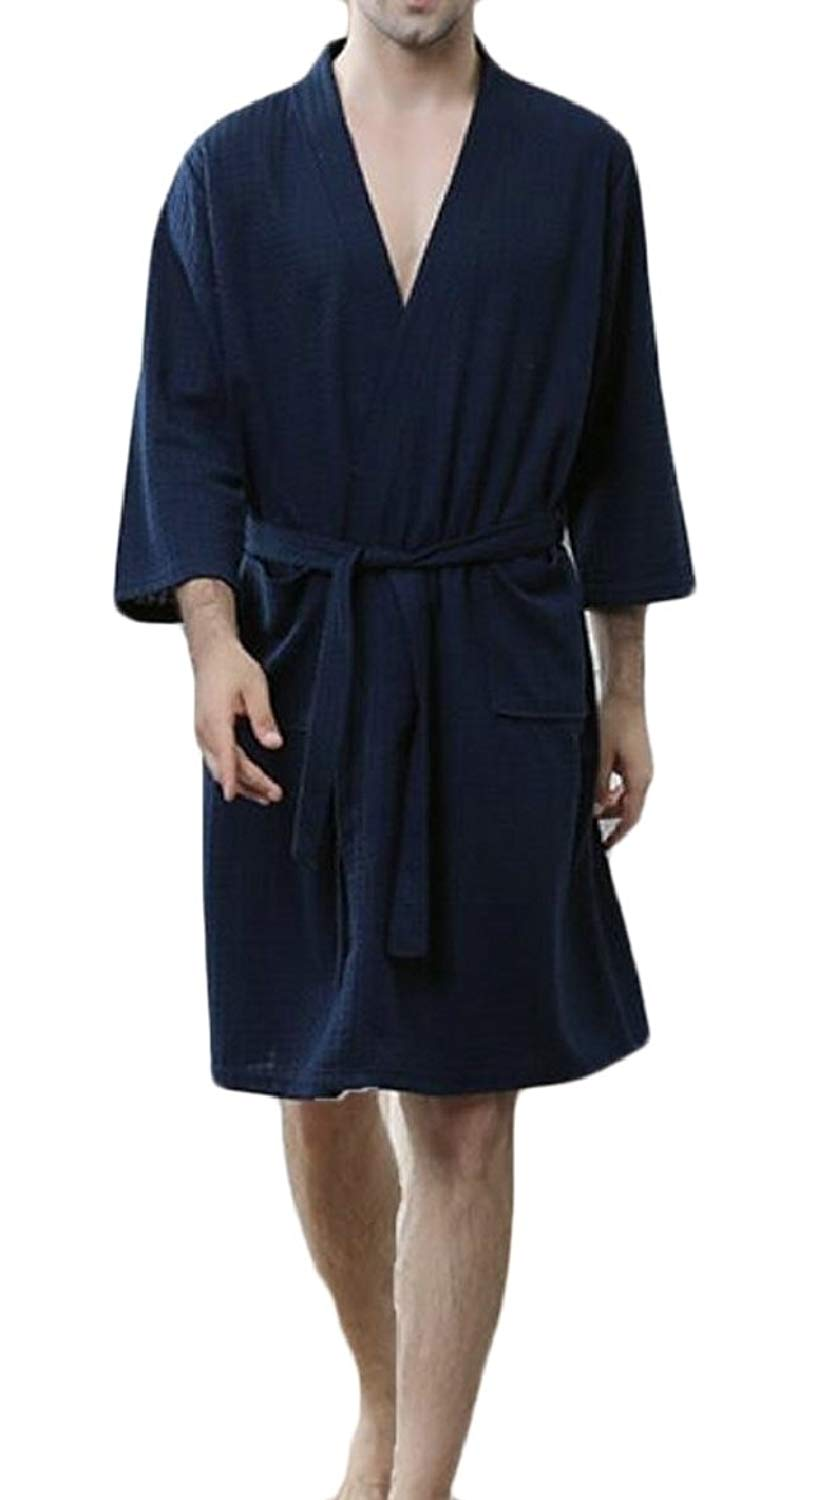 ccfe990705 Get Quotations · CBTLVSN Men s Waffle Kimono Robes Spa Bathrobe Terry Cloth  Robe